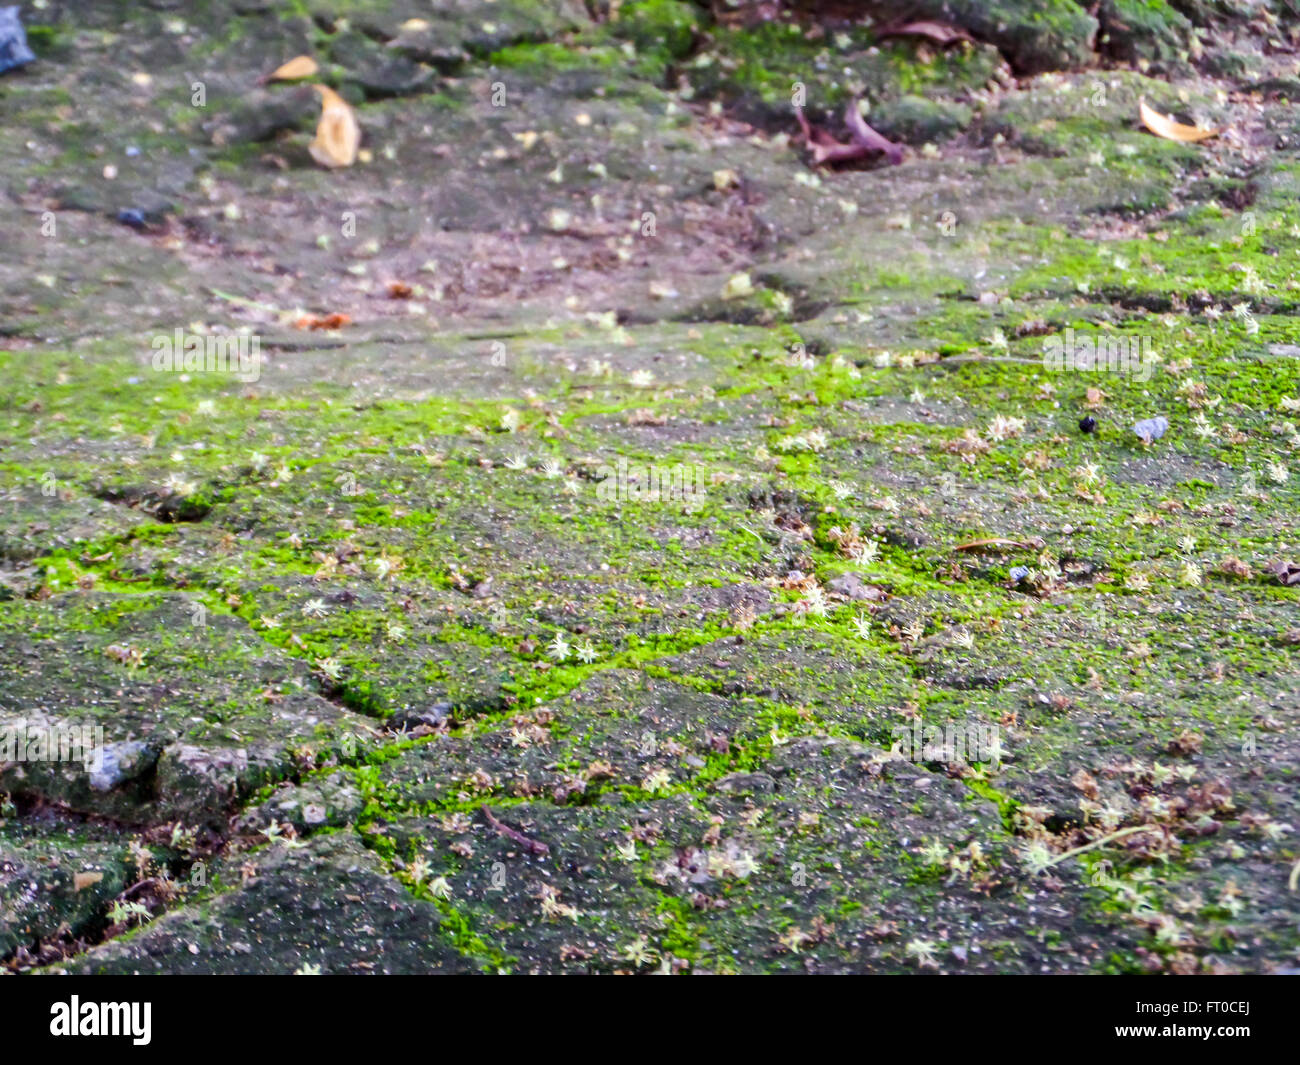 pollen and flower fall on moss surface at stone in forest - Stock Image